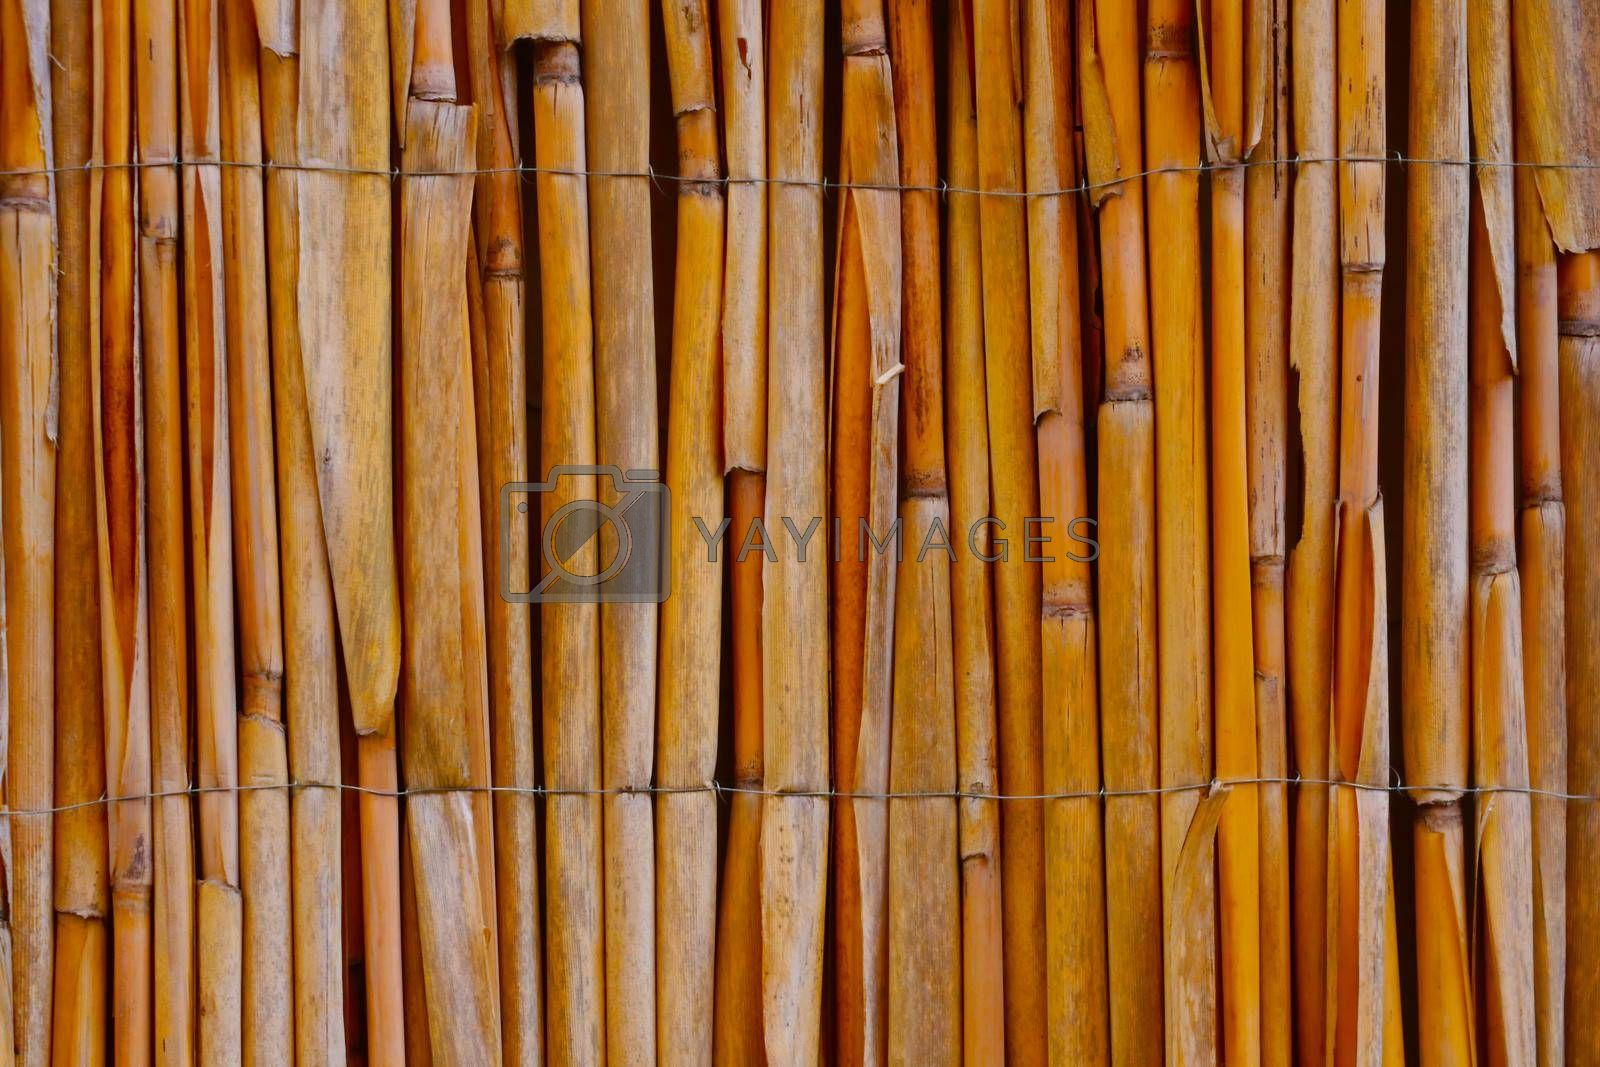 Royalty free image of Close-up on a bamboo fence in the park. Background, texture. by kip02kas